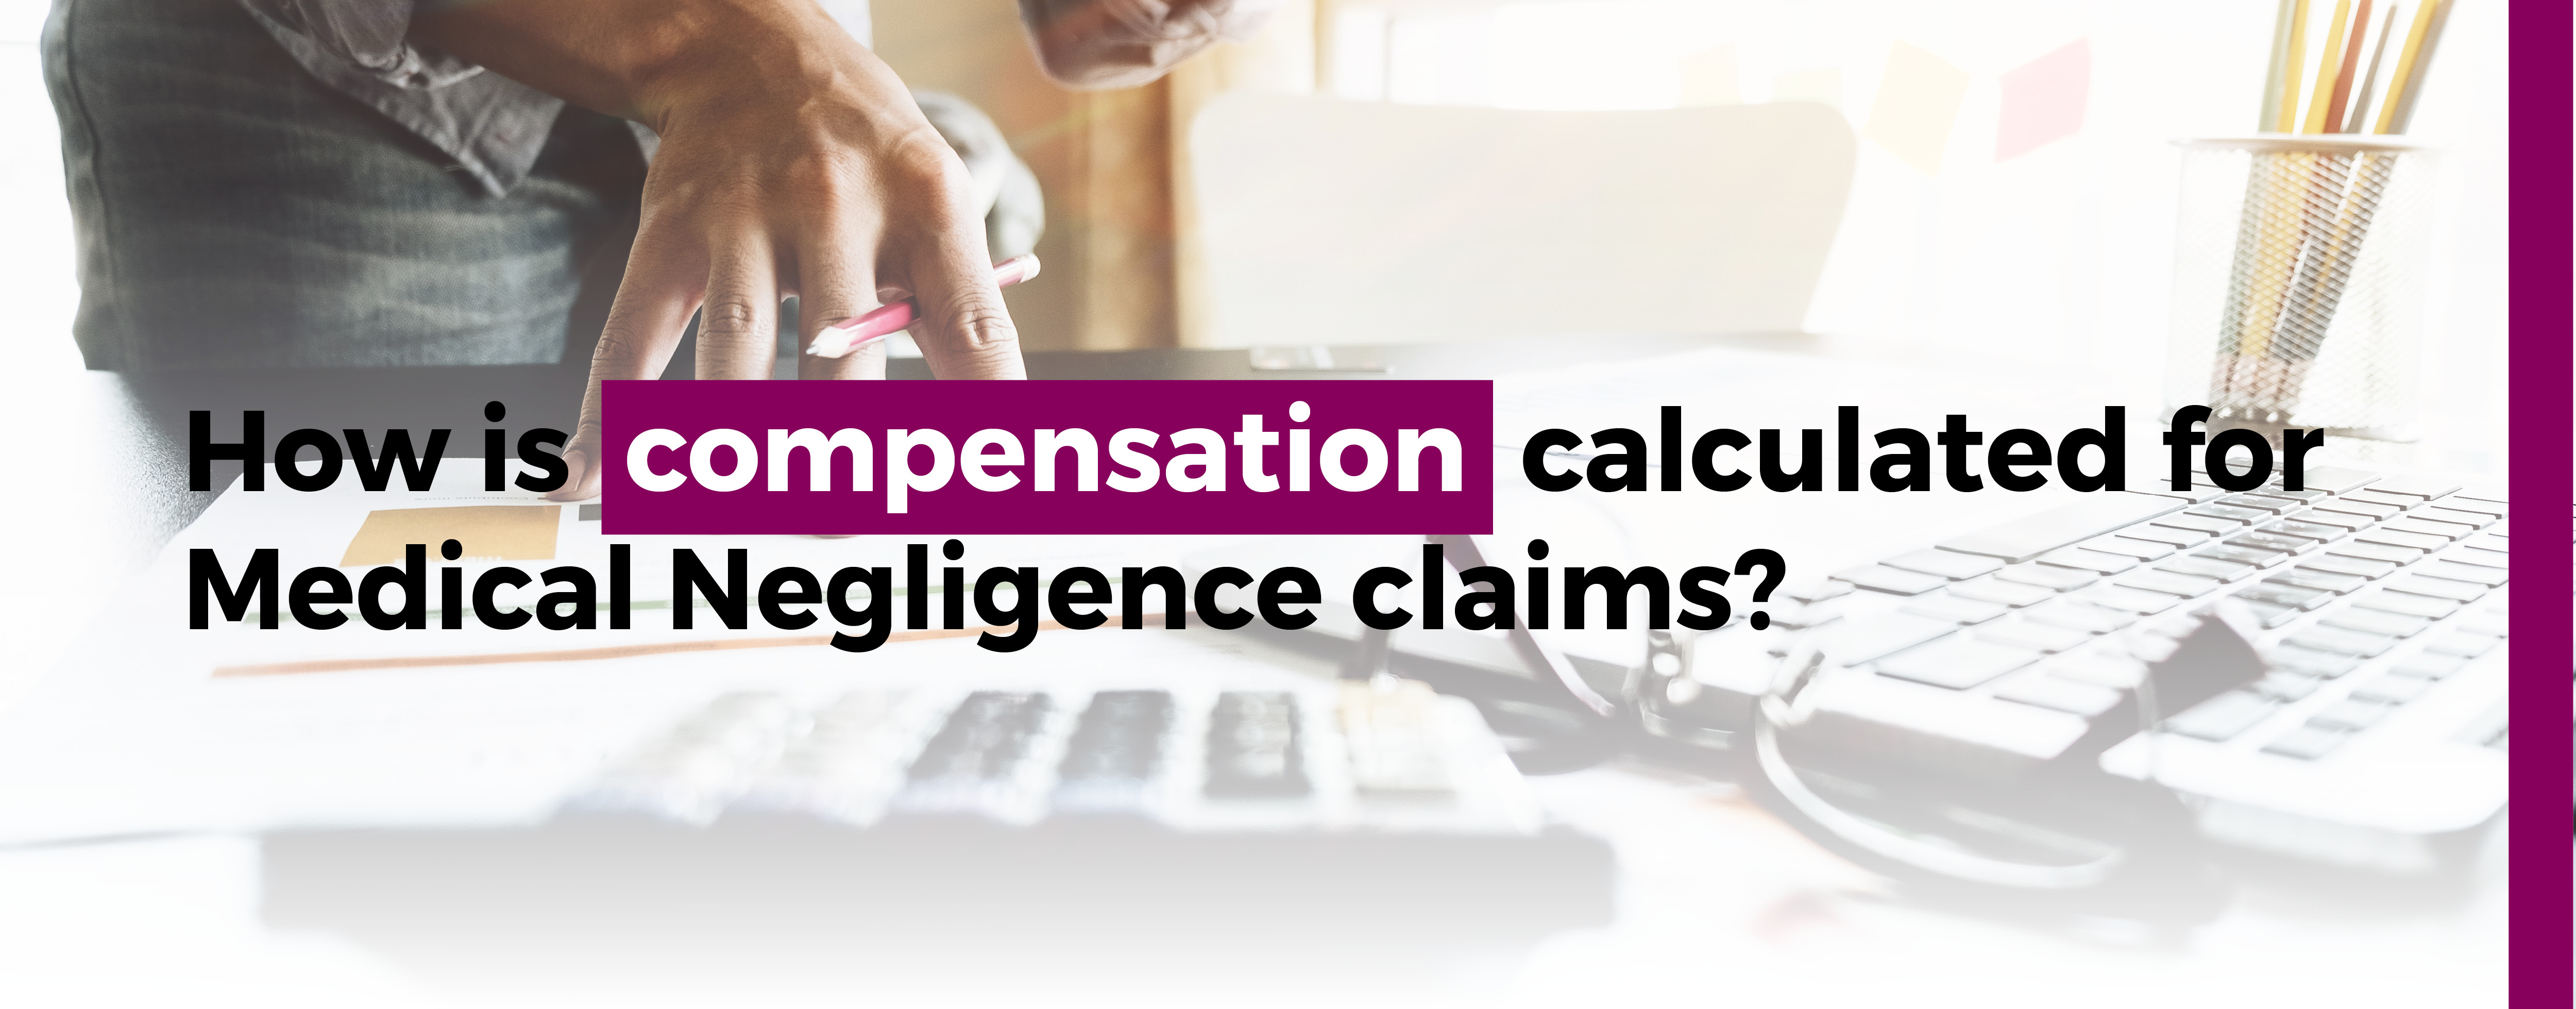 How is compensation calculated for medical negligence claims?